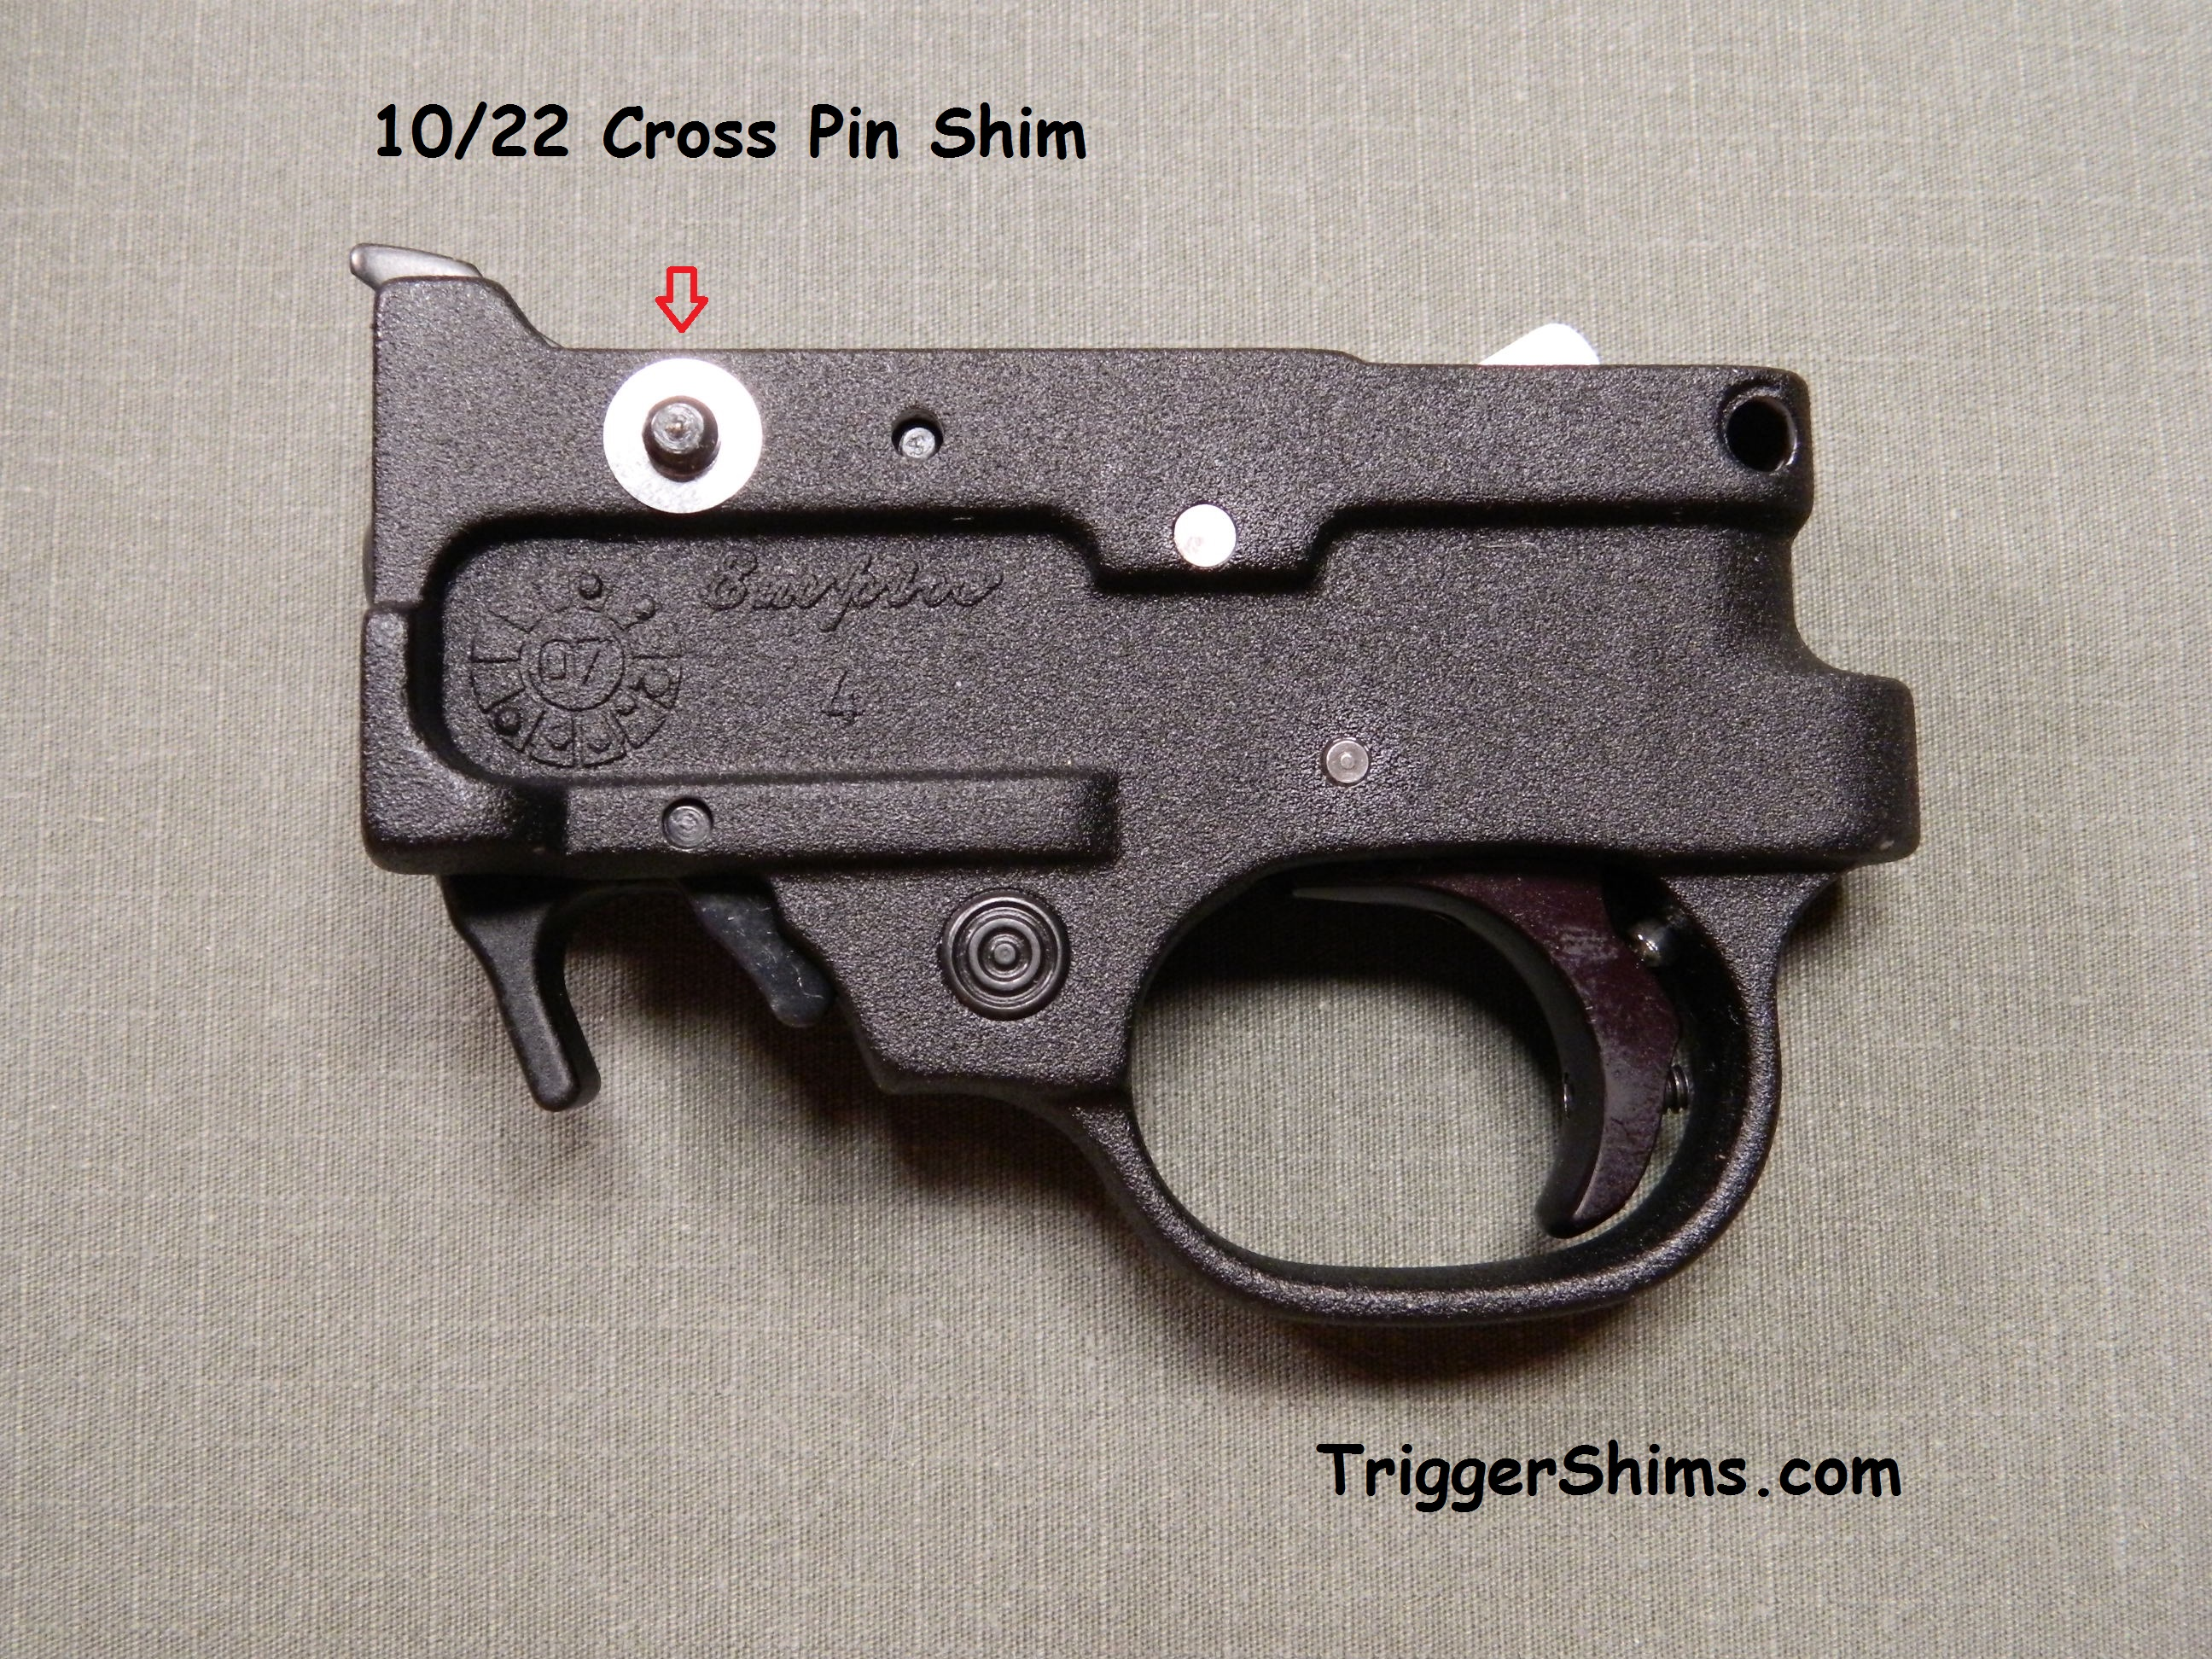 10/22 Cross Pin Shim